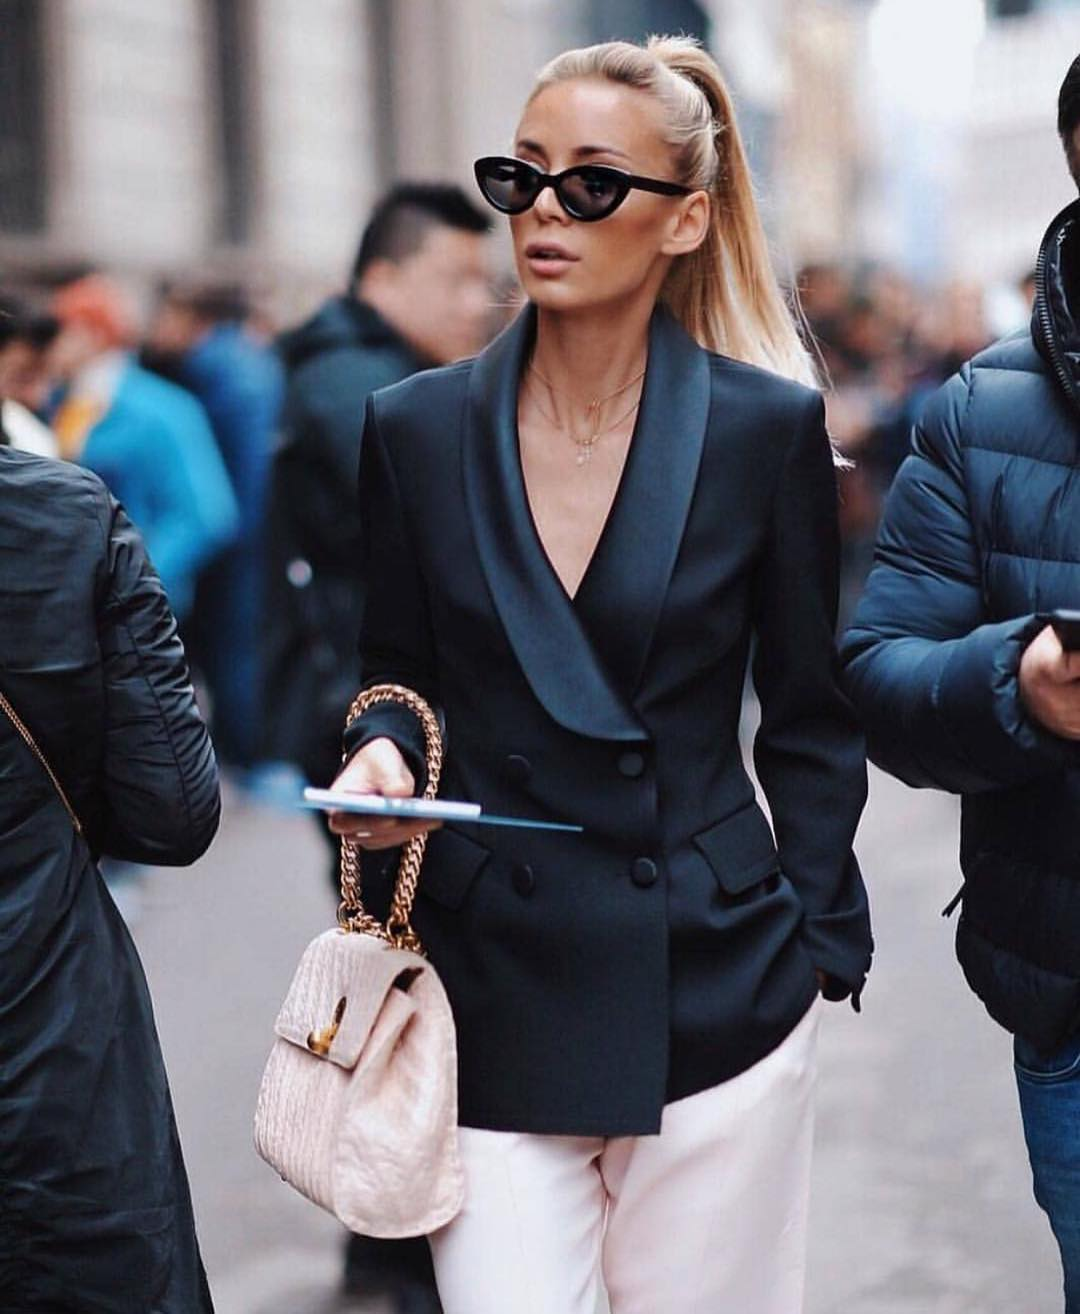 Black Double Breasted Blazer And White Wide Pants For Summer 2019